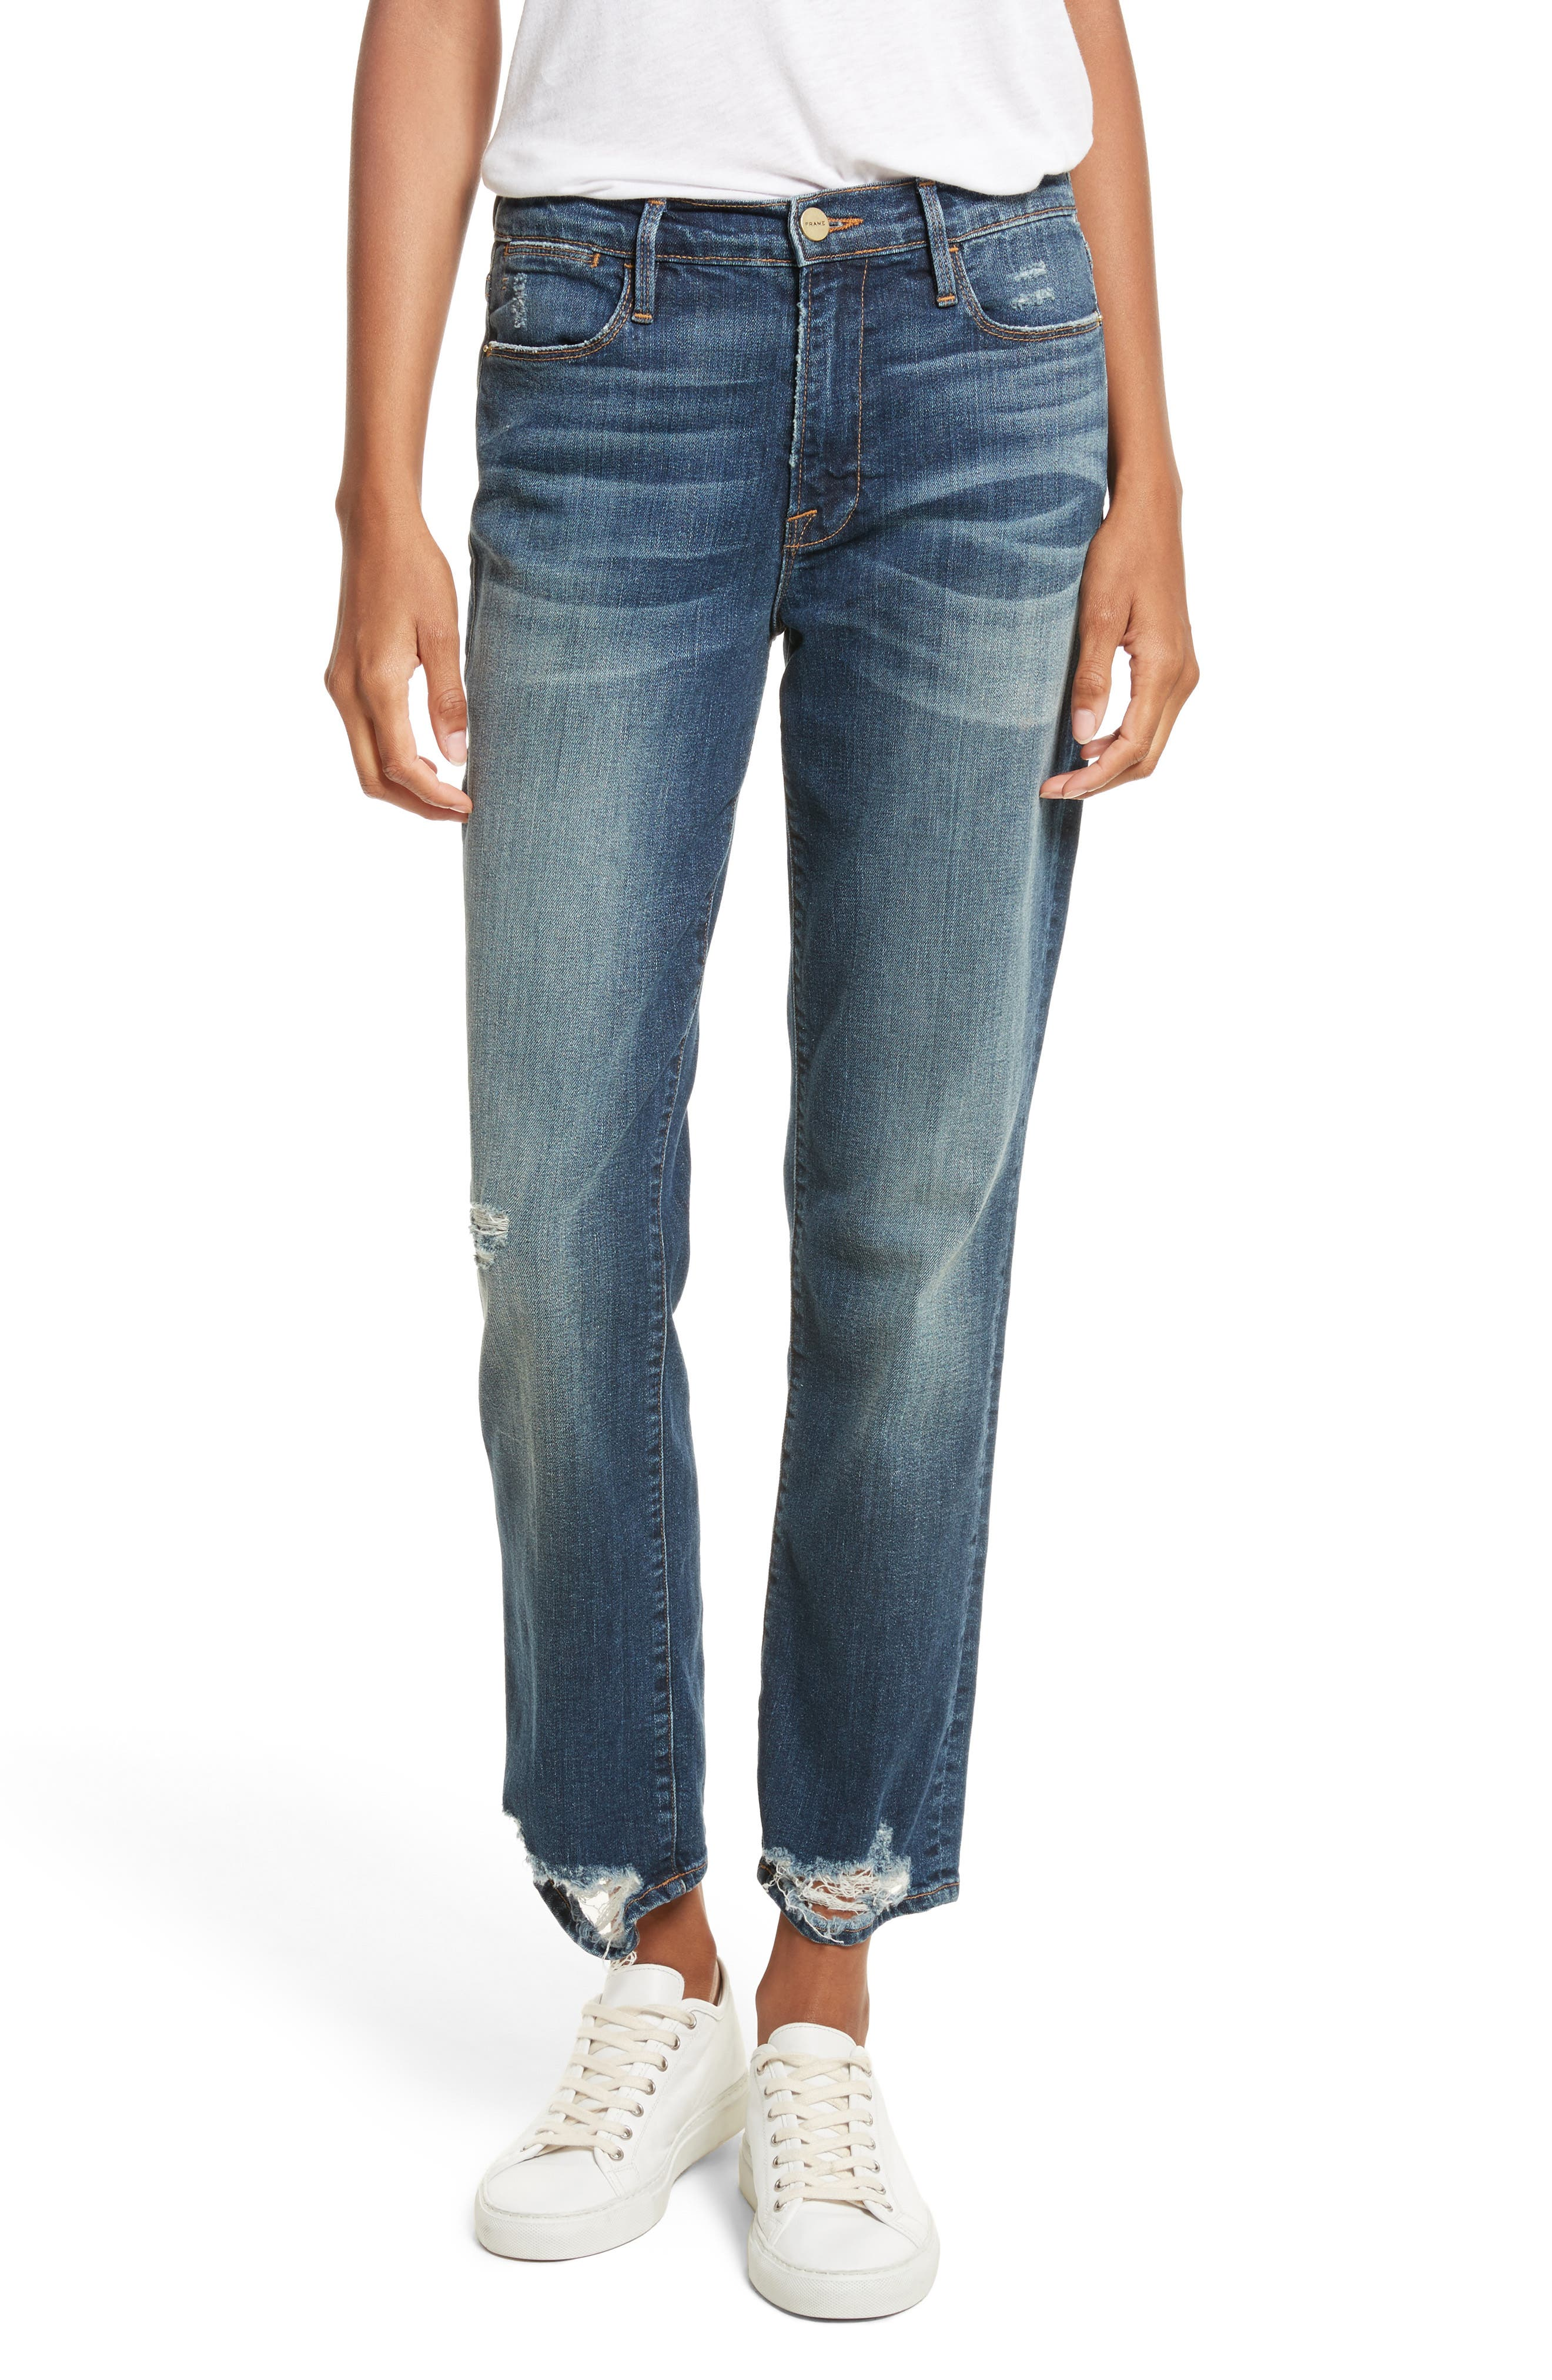 Le High Straight High Rise Jeans,                             Main thumbnail 1, color,                             402